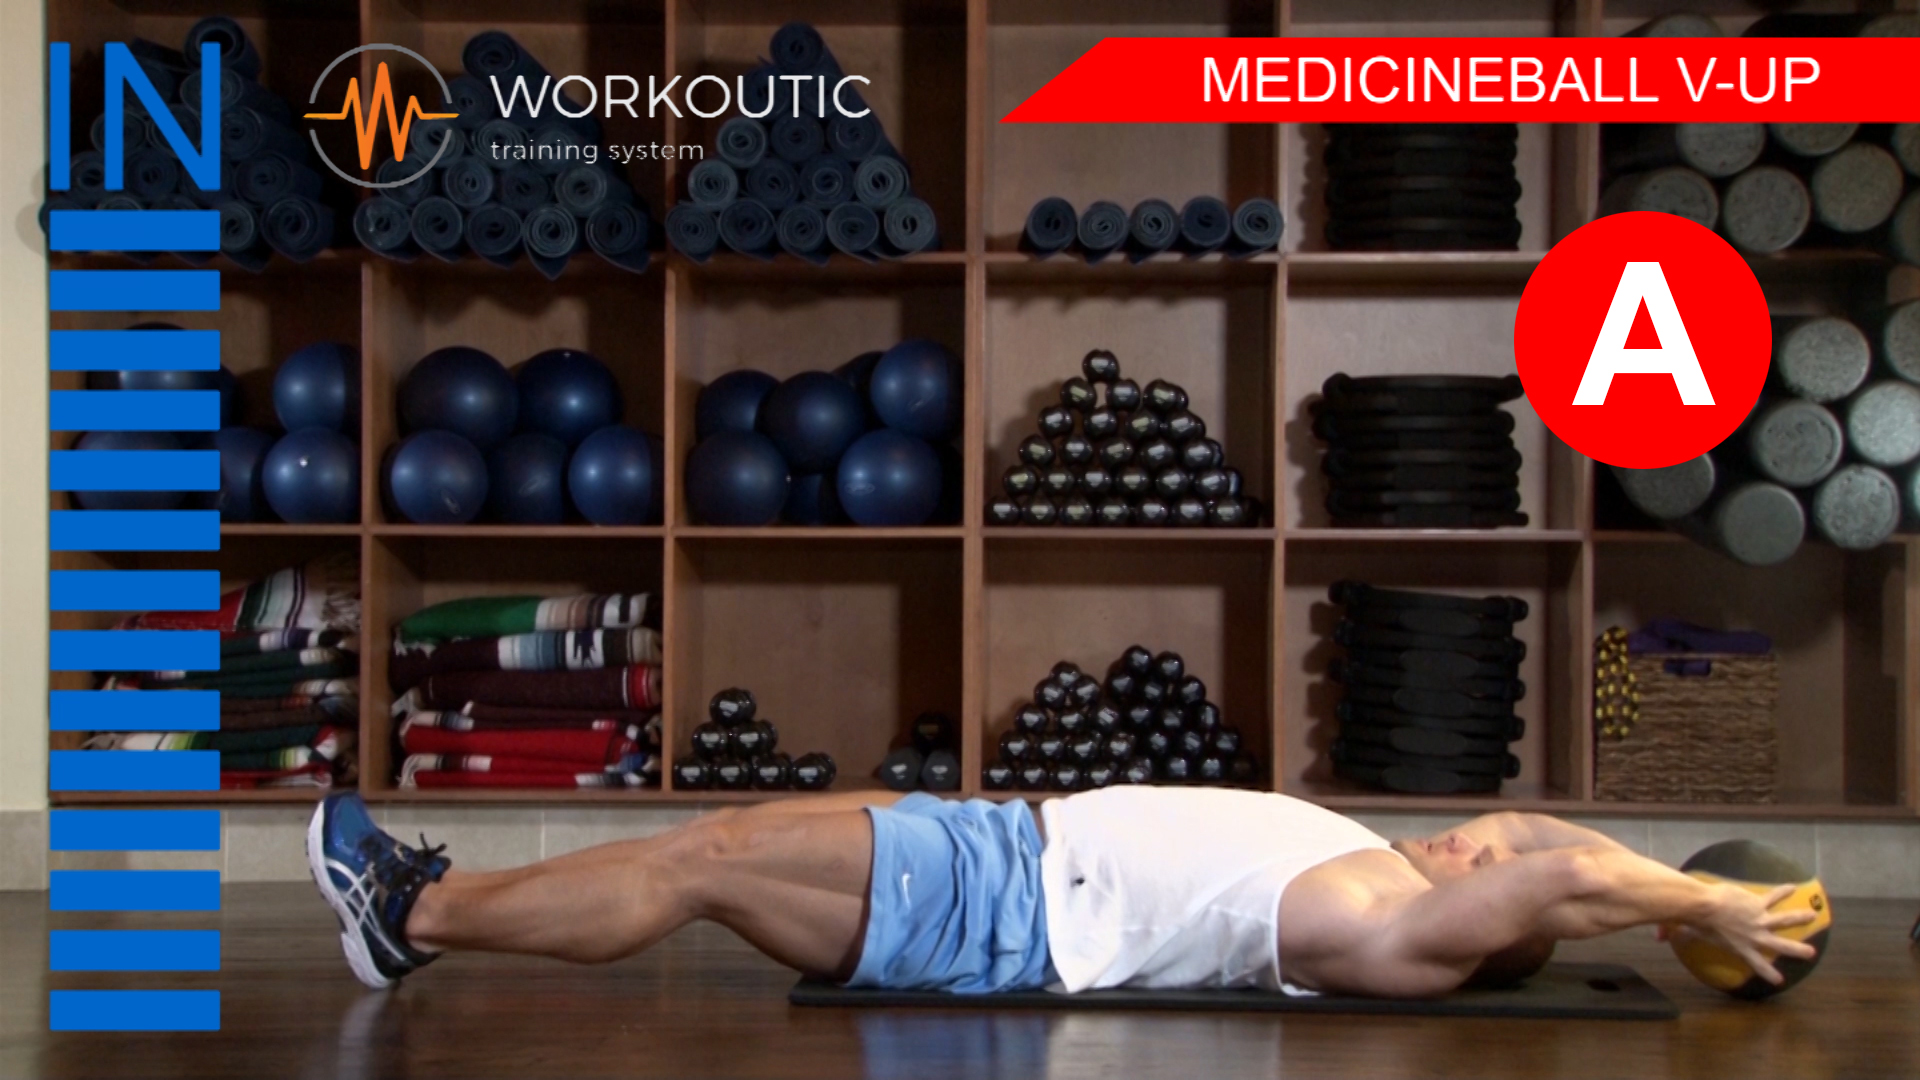 Abs Exercises - Workutic - 6 pack special - Medicineball V-Up Inhale